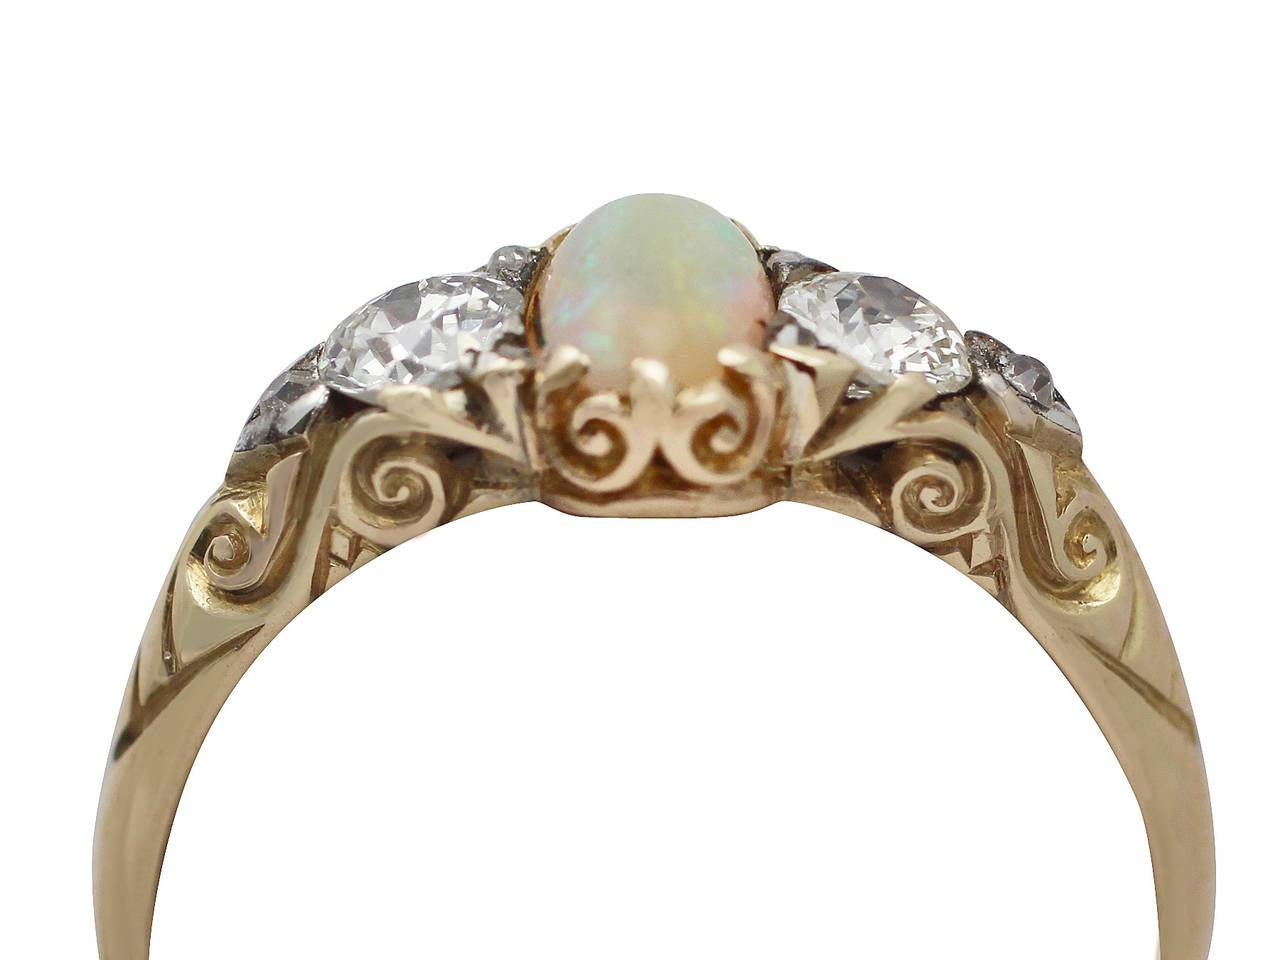 0.48Ct Opal & 0.76Ct Diamond 18k Yellow Gold Trilogy Ring - Antique Victorian 2